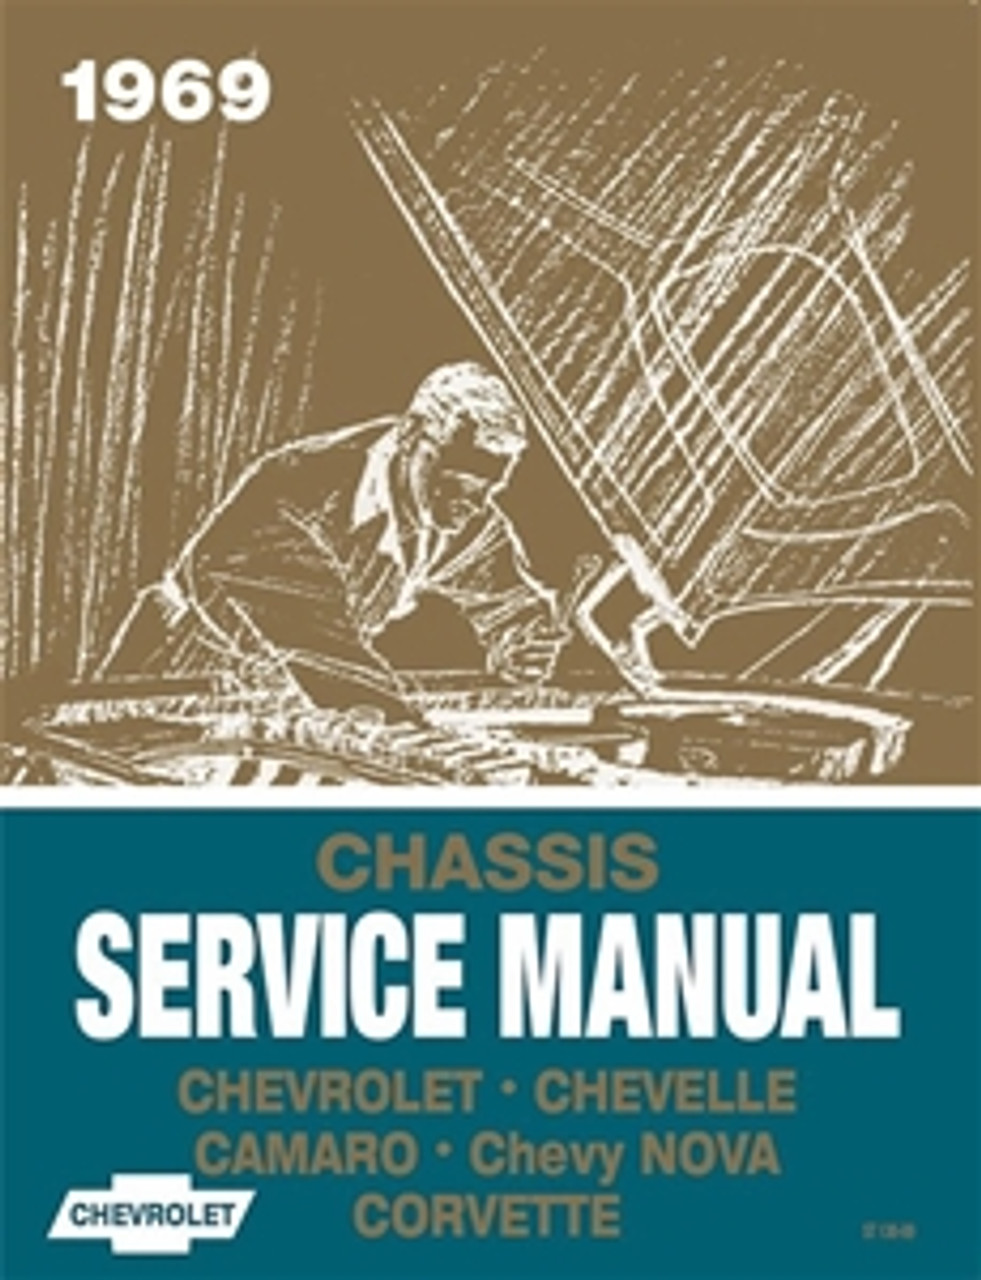 1967 CHASSIS SERVICE MANUAL CHEVY CORVETTE CHEVELLE CAMARO CHEVY II FREE SHIP